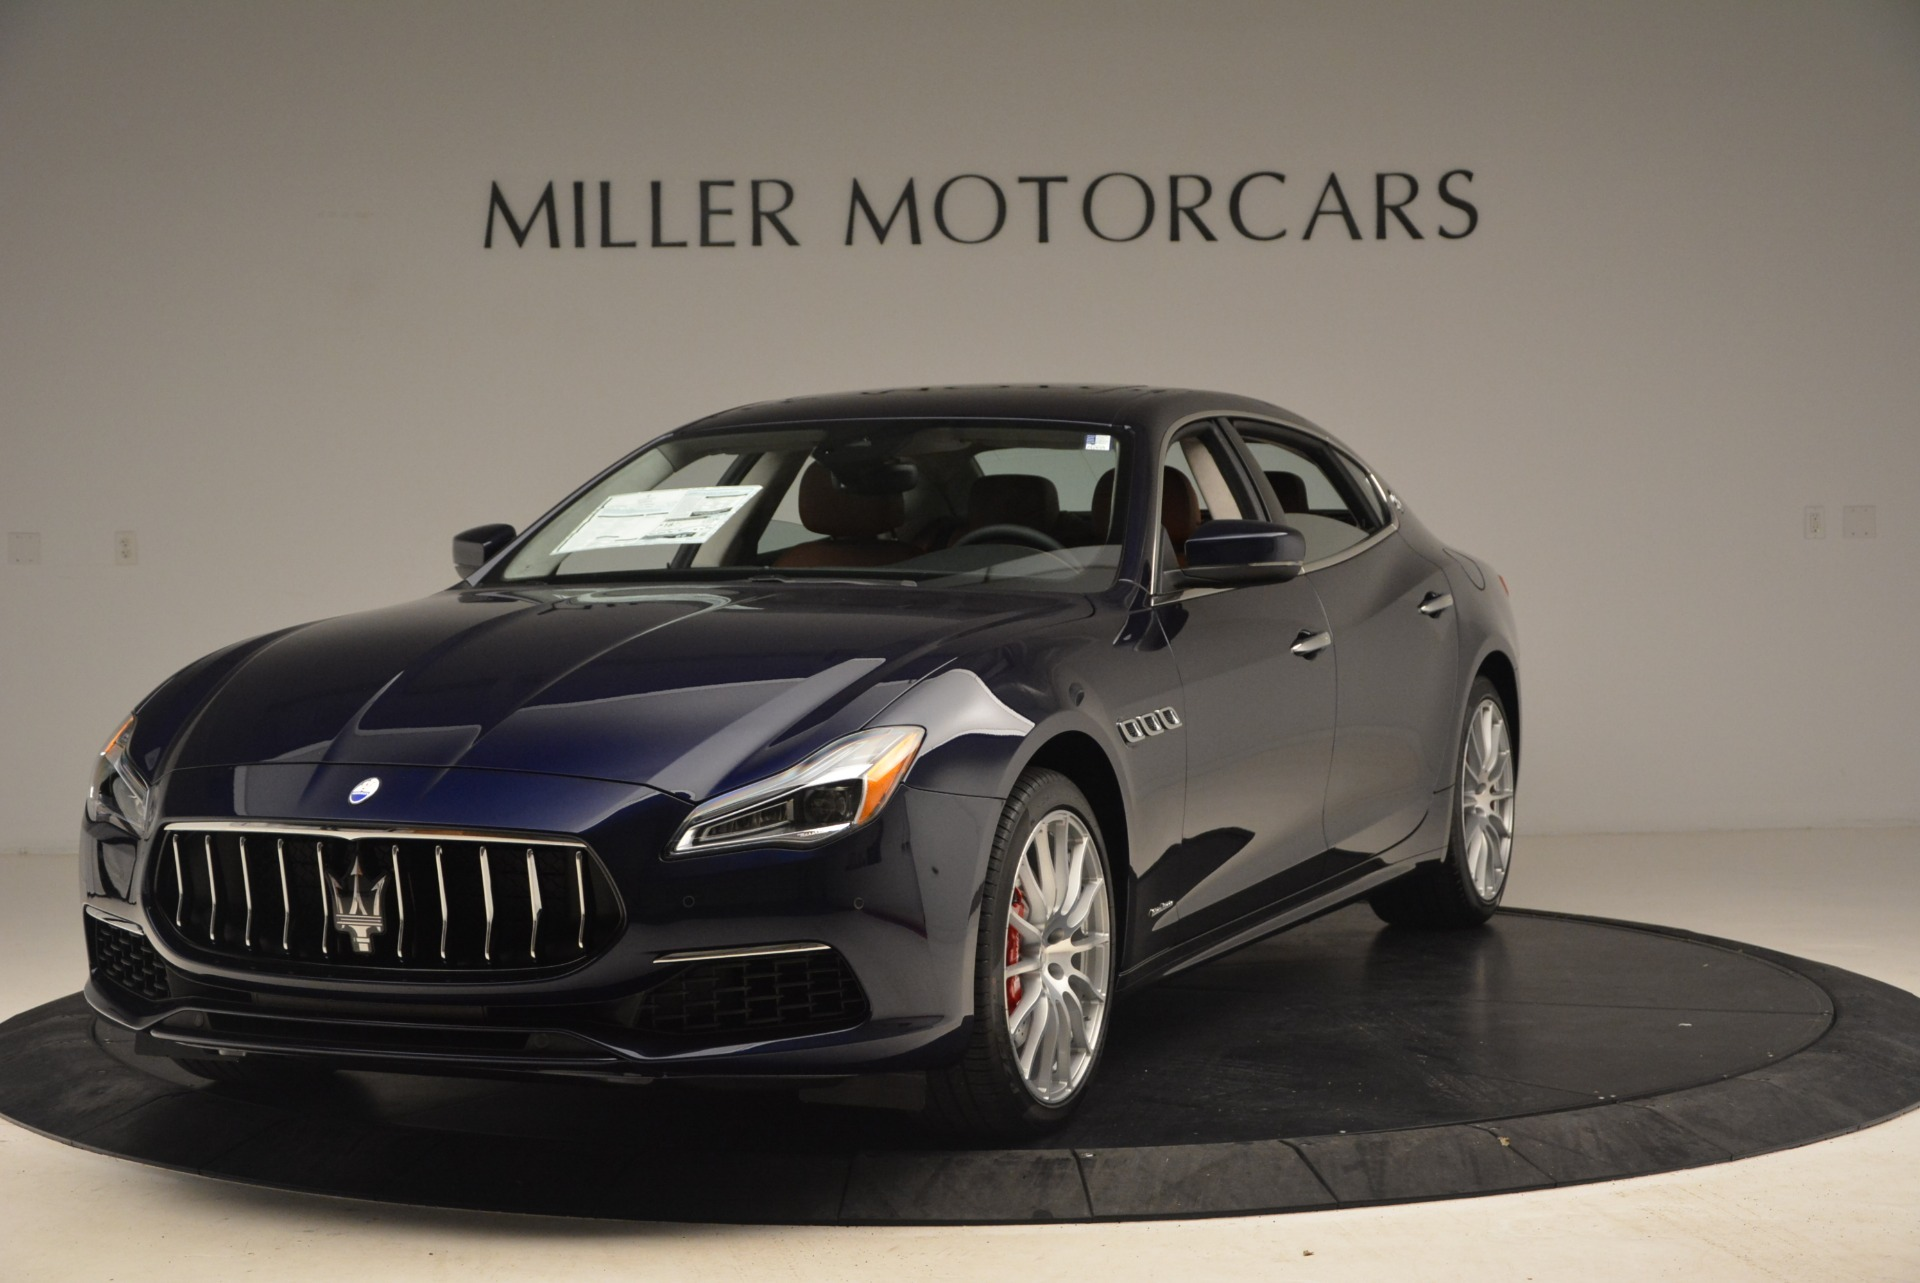 New 2019 Maserati Quattroporte S Q4 GranSport For Sale In Westport, CT 2591_main